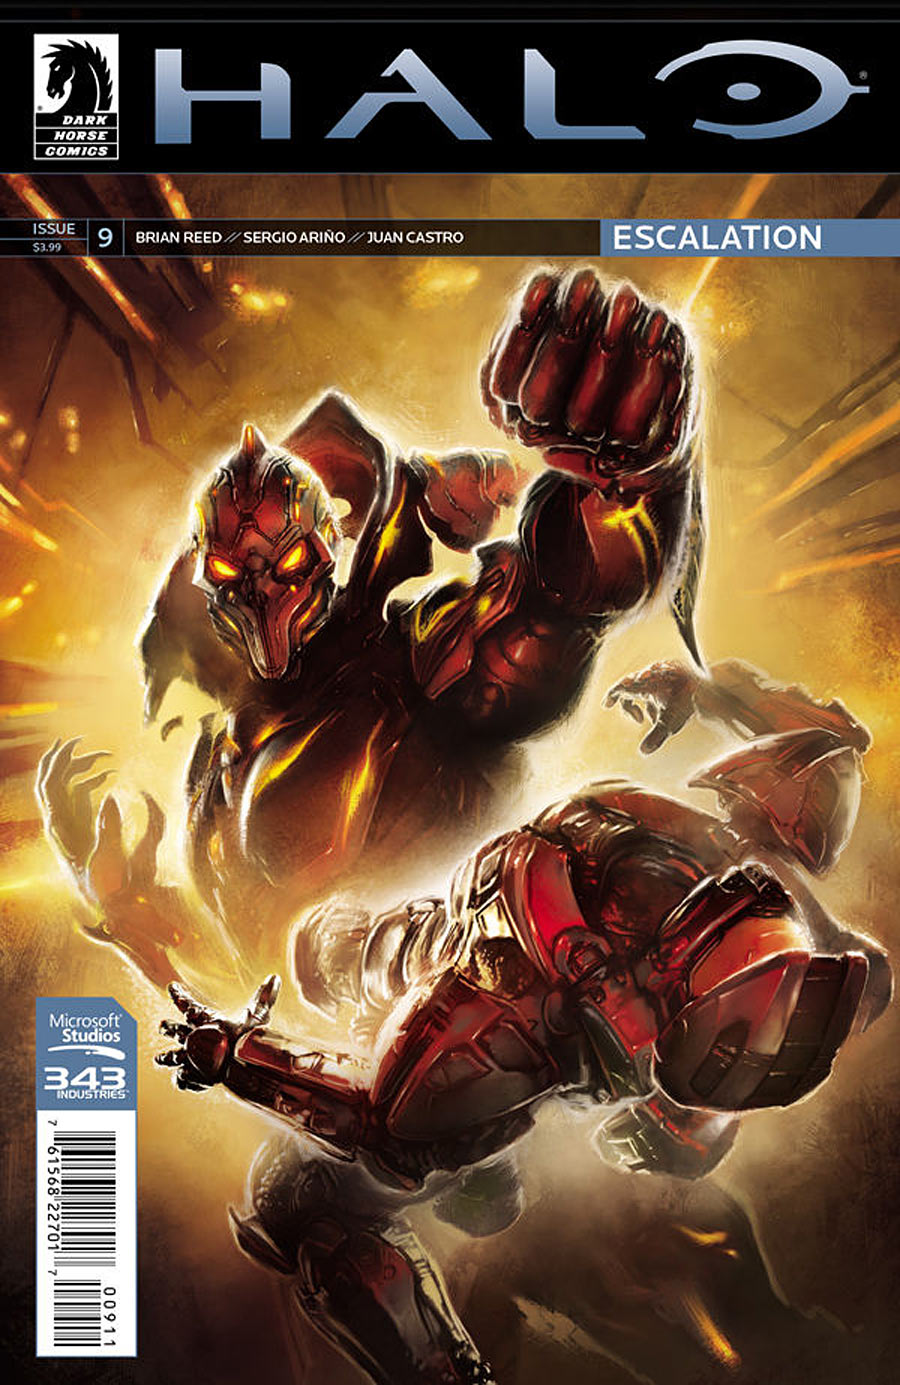 Halo Comic Books In Order Geekstanitocom